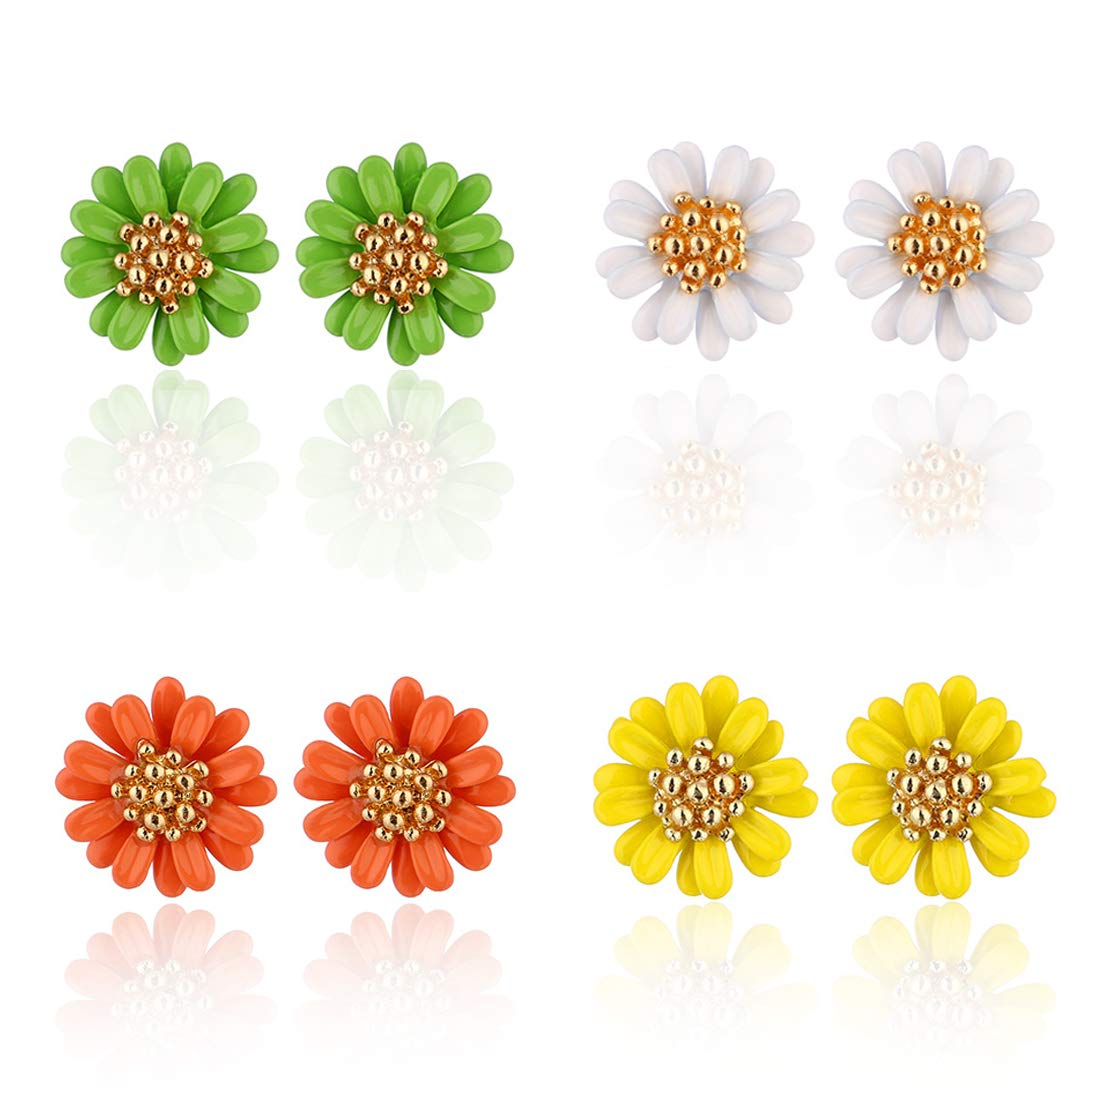 GUNIANG Daisy Flower Earrings Cute Stud Earring for Girls Teens women Sterling Silver Hypoallergenic White Jewelry Gifts